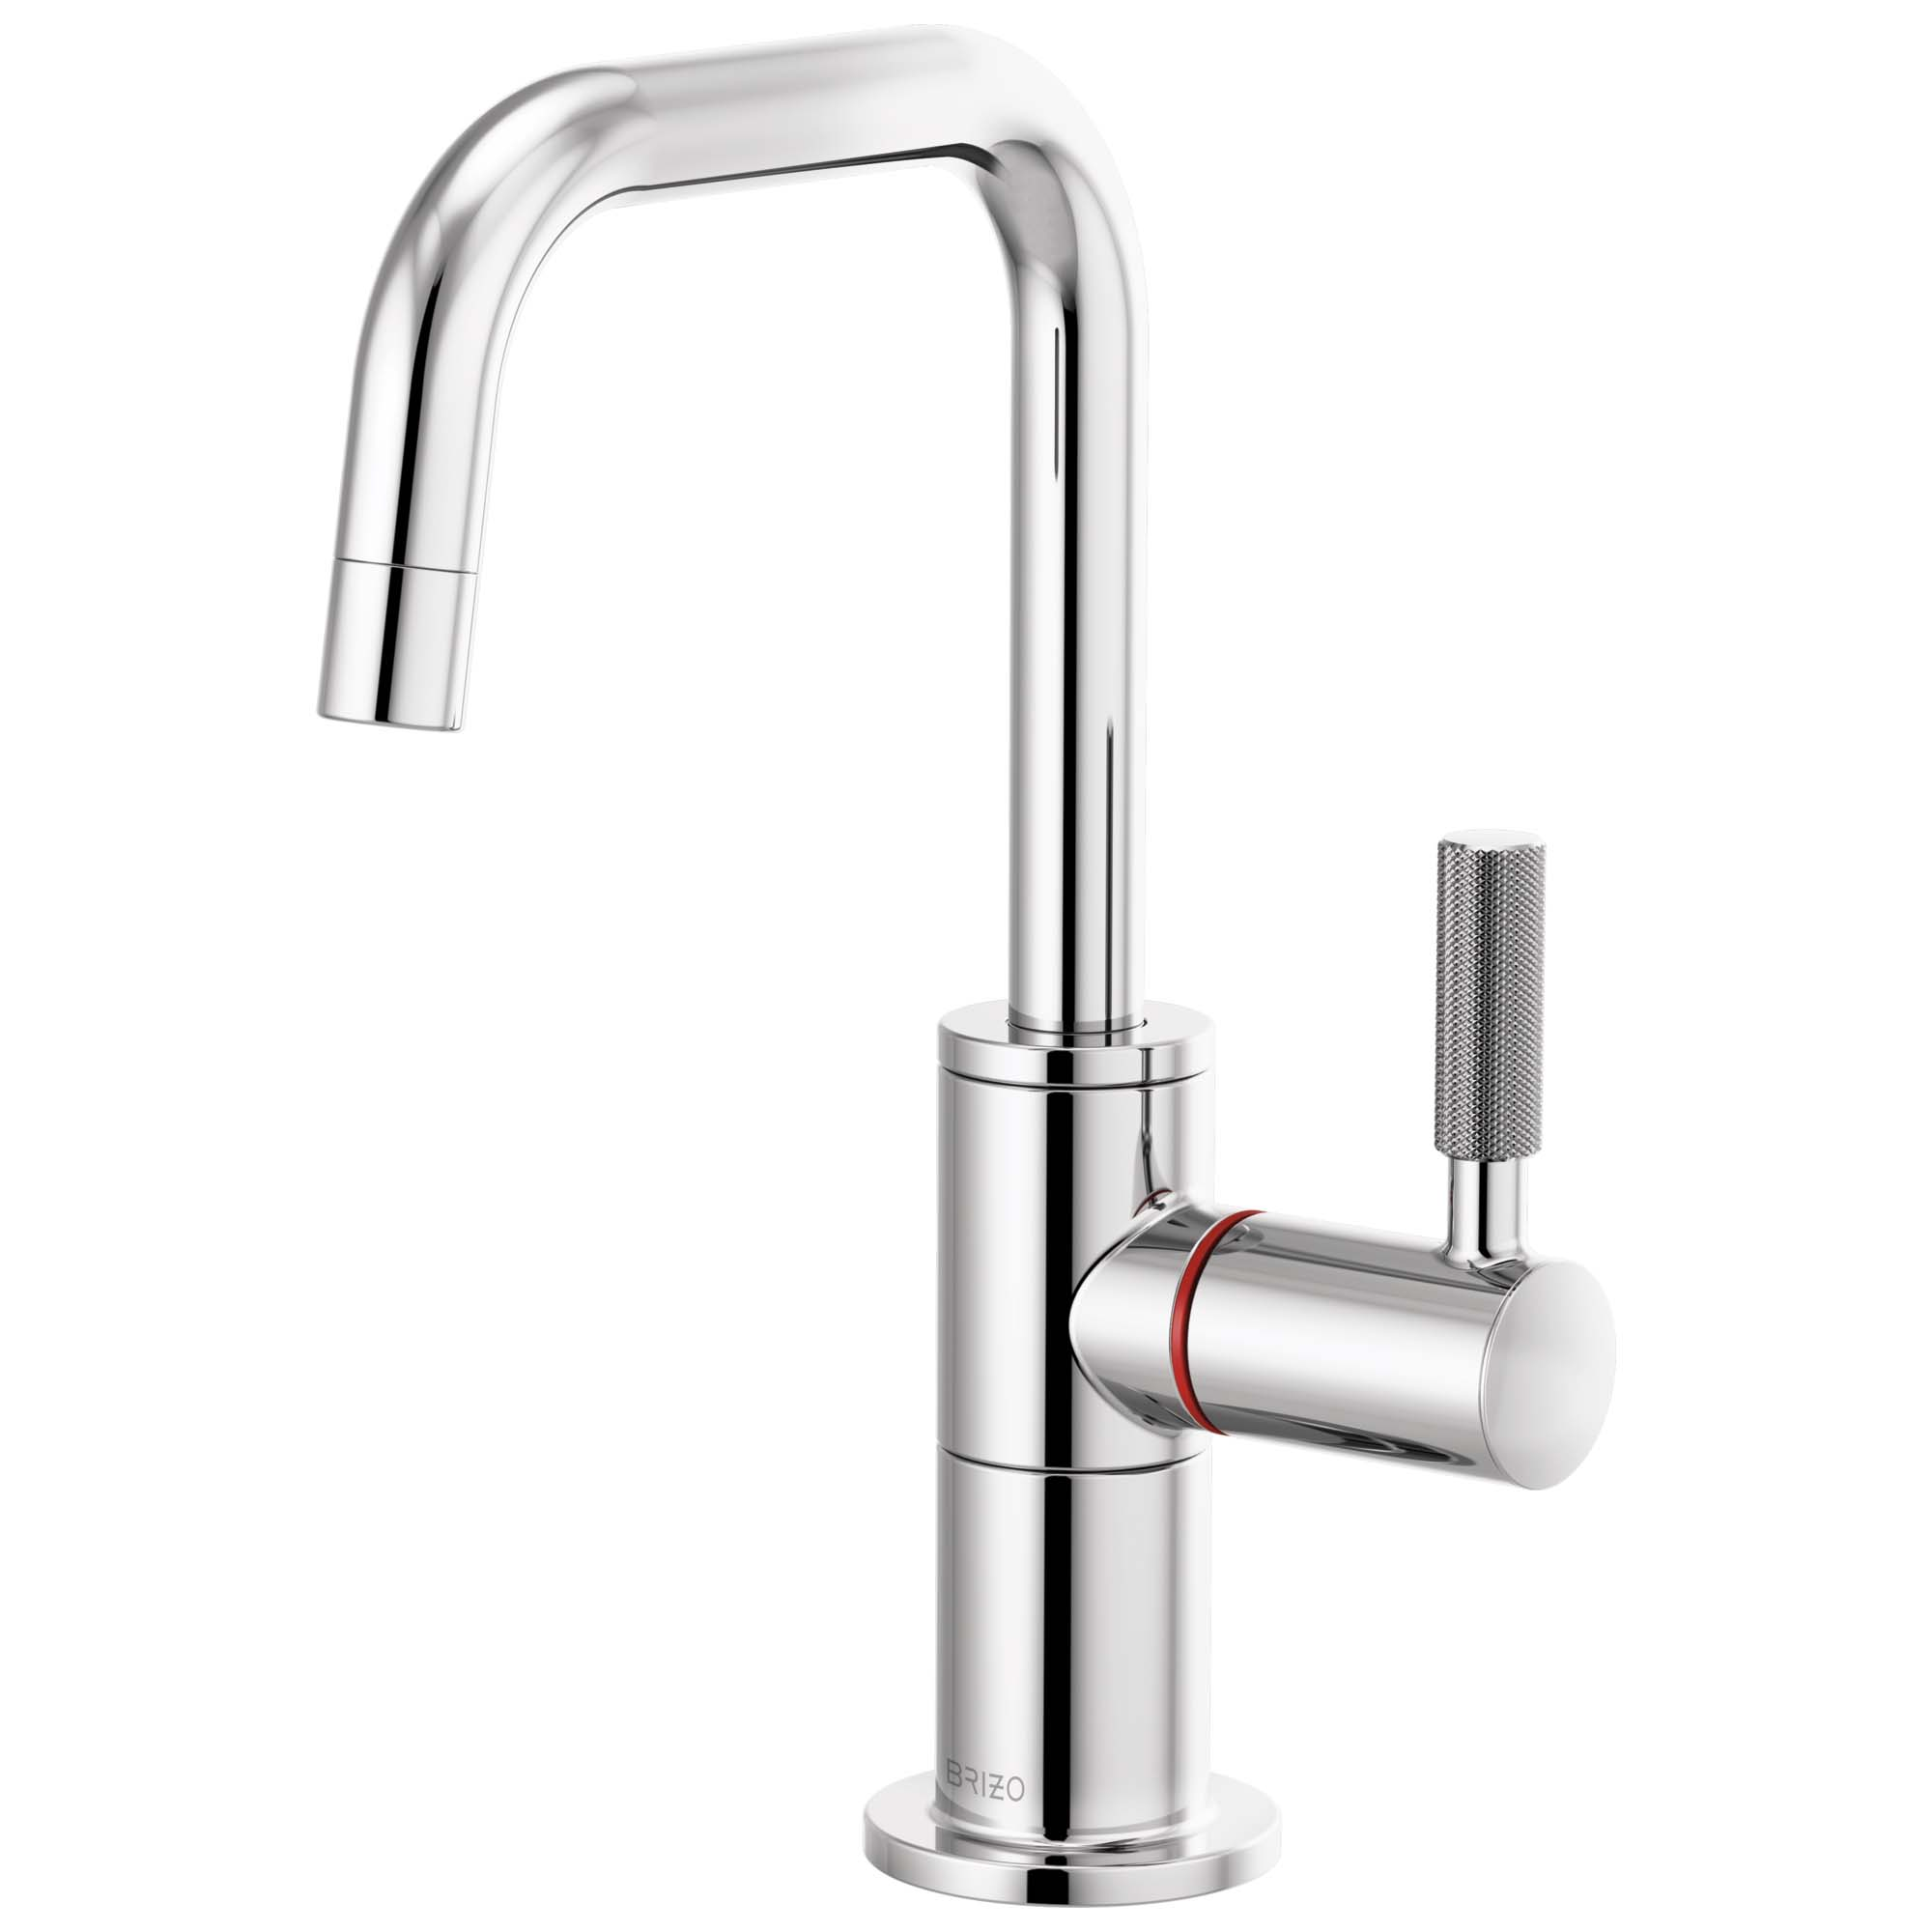 Brizo 61353LF-H-PC Litze Instant Hot Faucet with Square Spout and Knurled Handle - Chrome